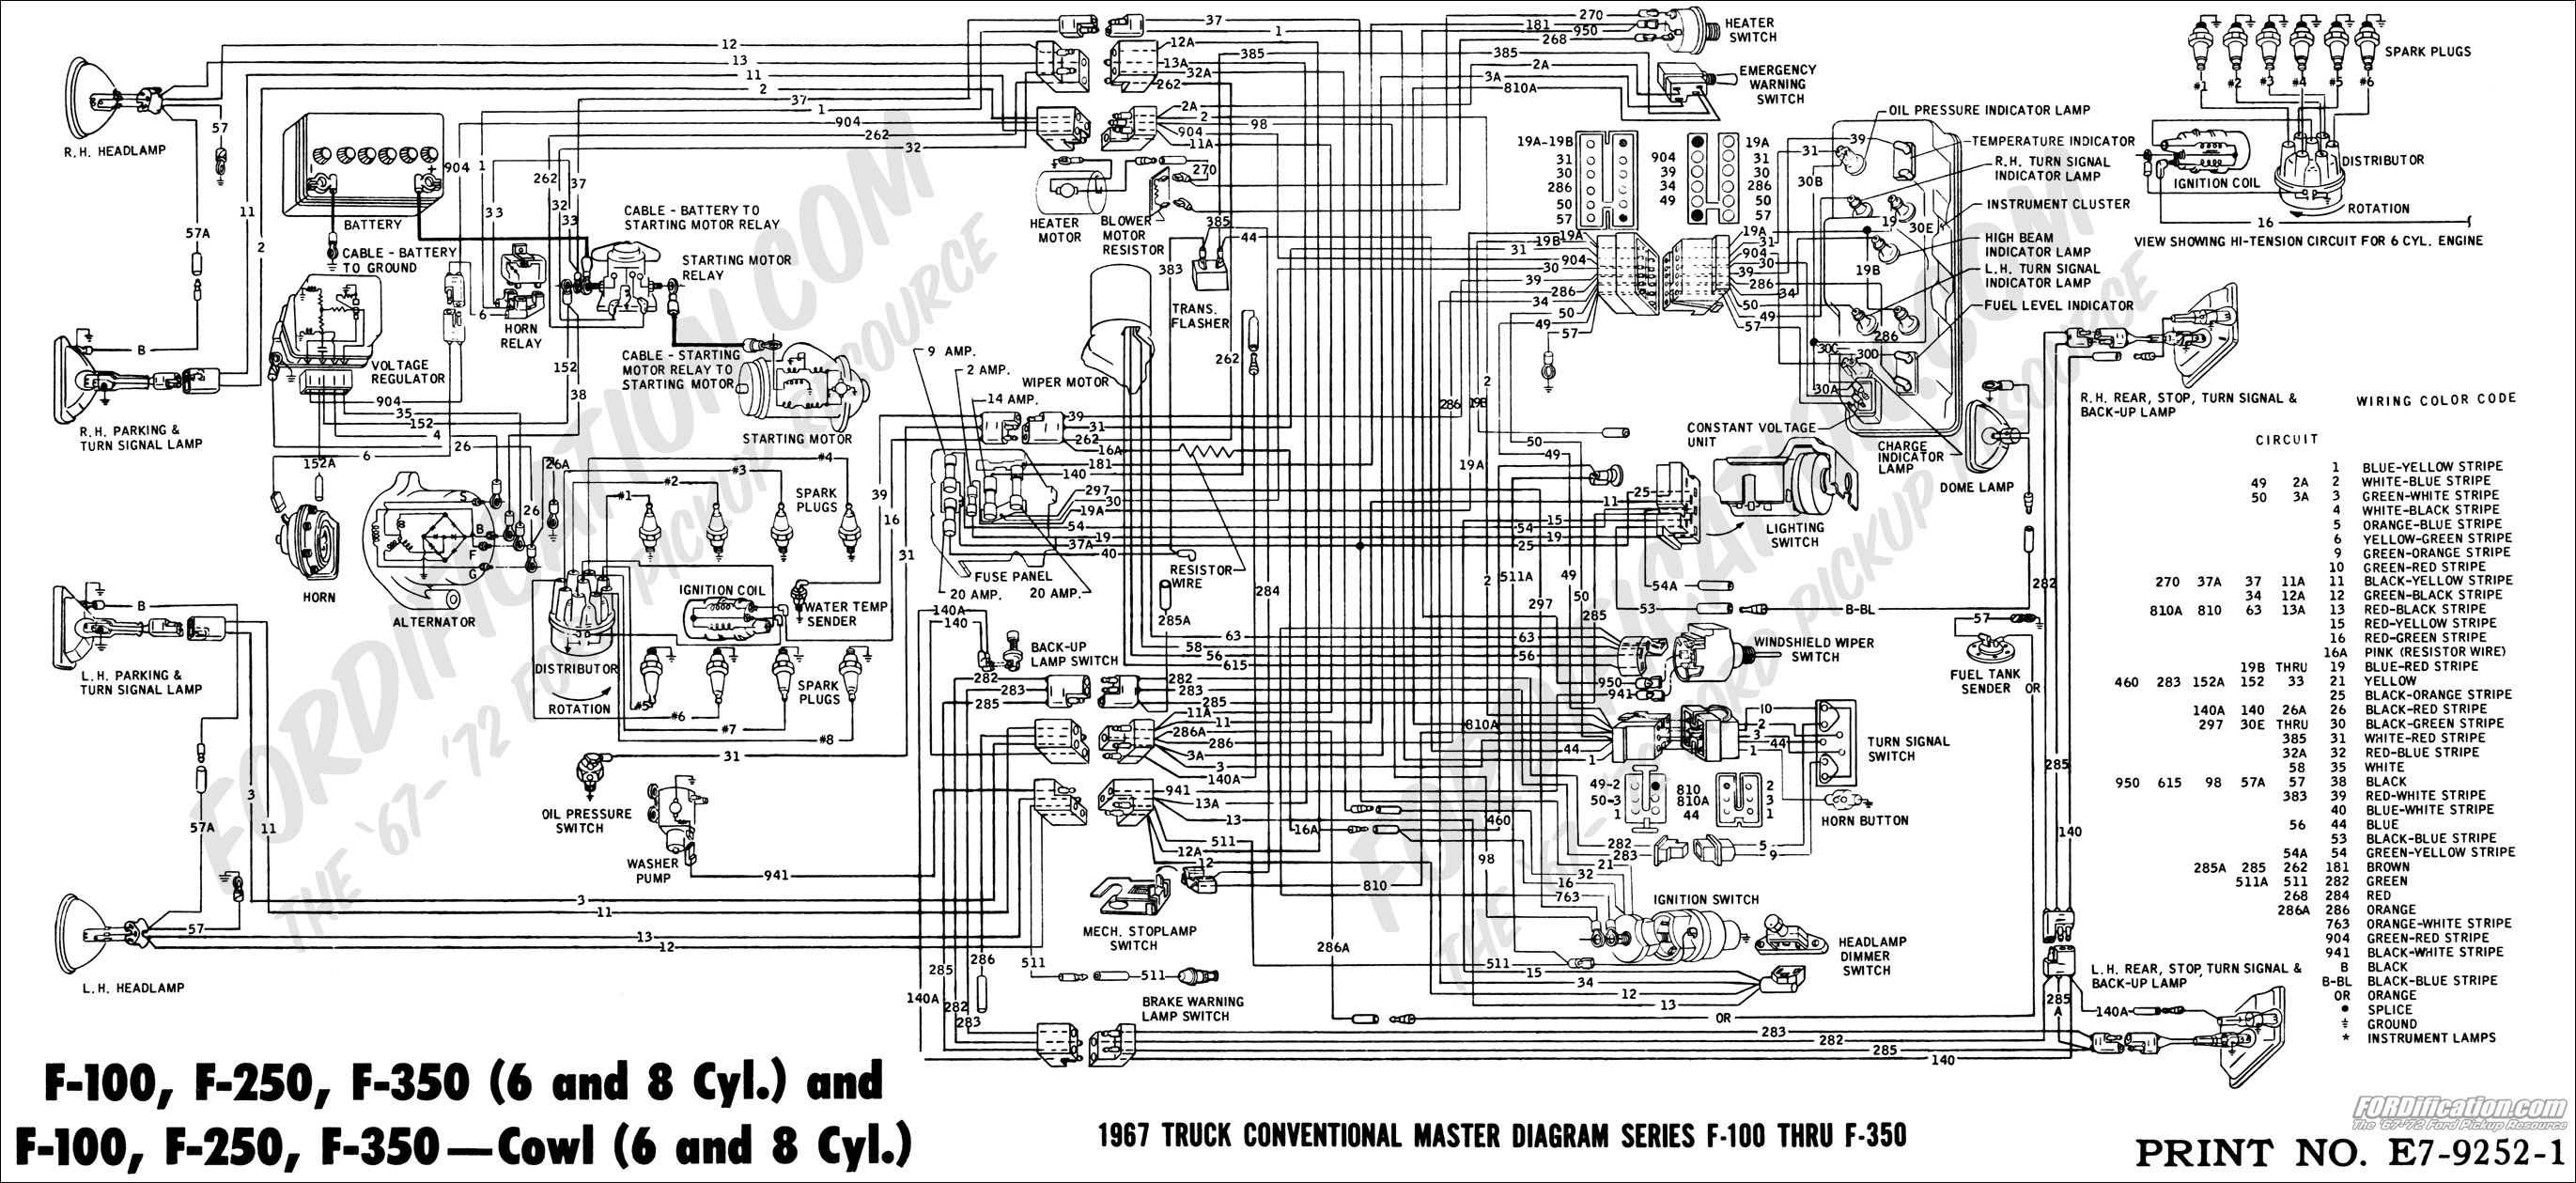 Ford Wiring Diagrams Online Reinvent Your Diagram 2003 Contour 1978 F700 Schematics Rh Delvato Co Explorer Power Window Color Wire 1998